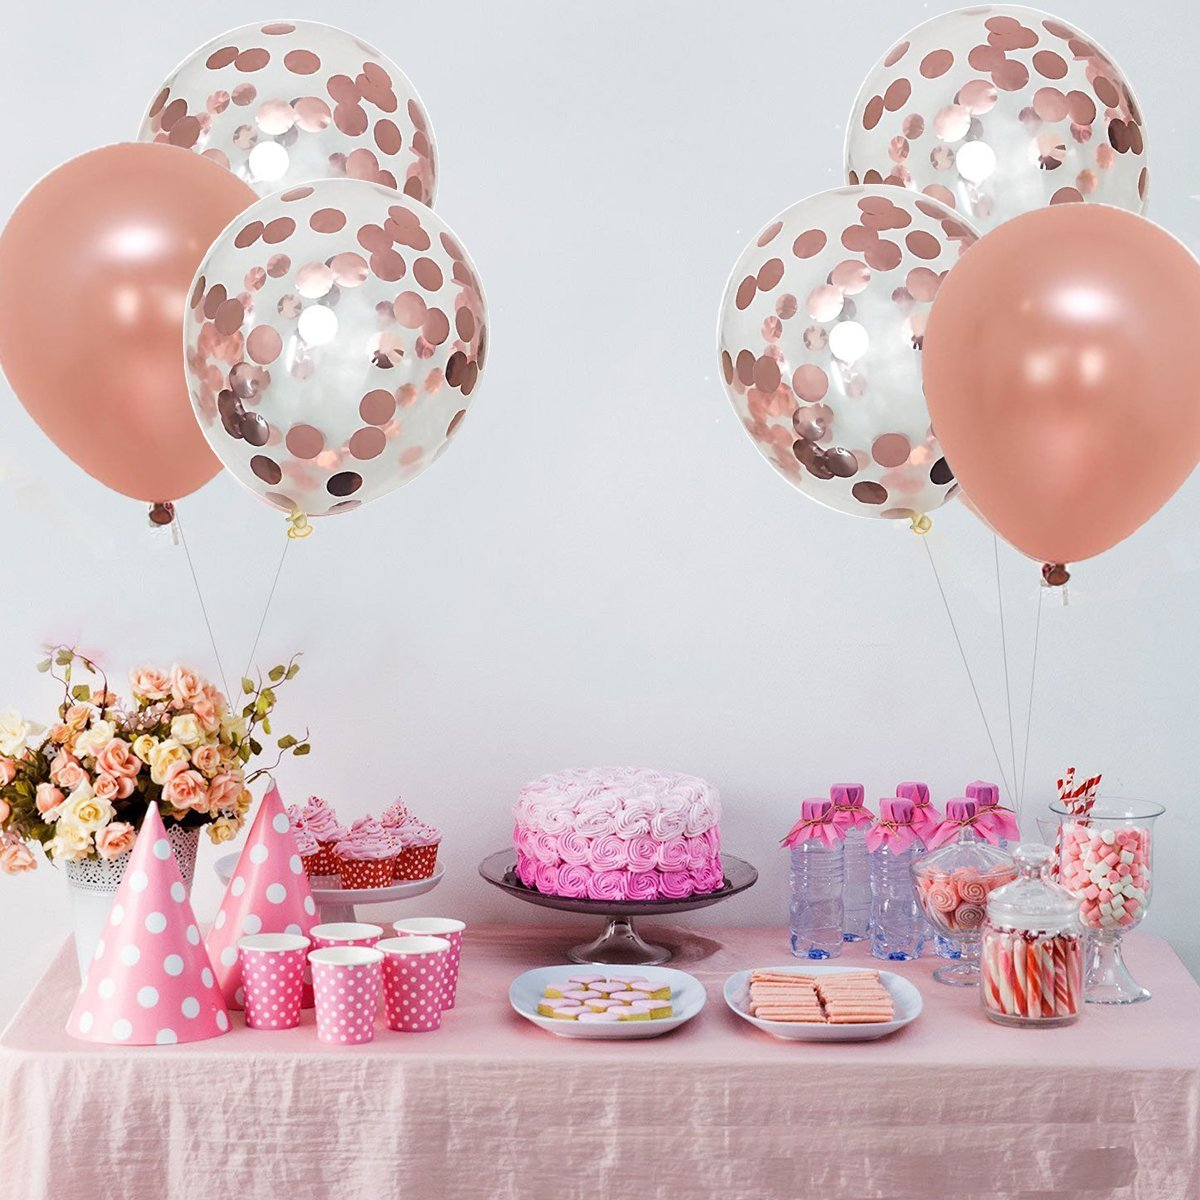 Large, Rose Gold Confetti Balloons Decorations - 18 Inch ...